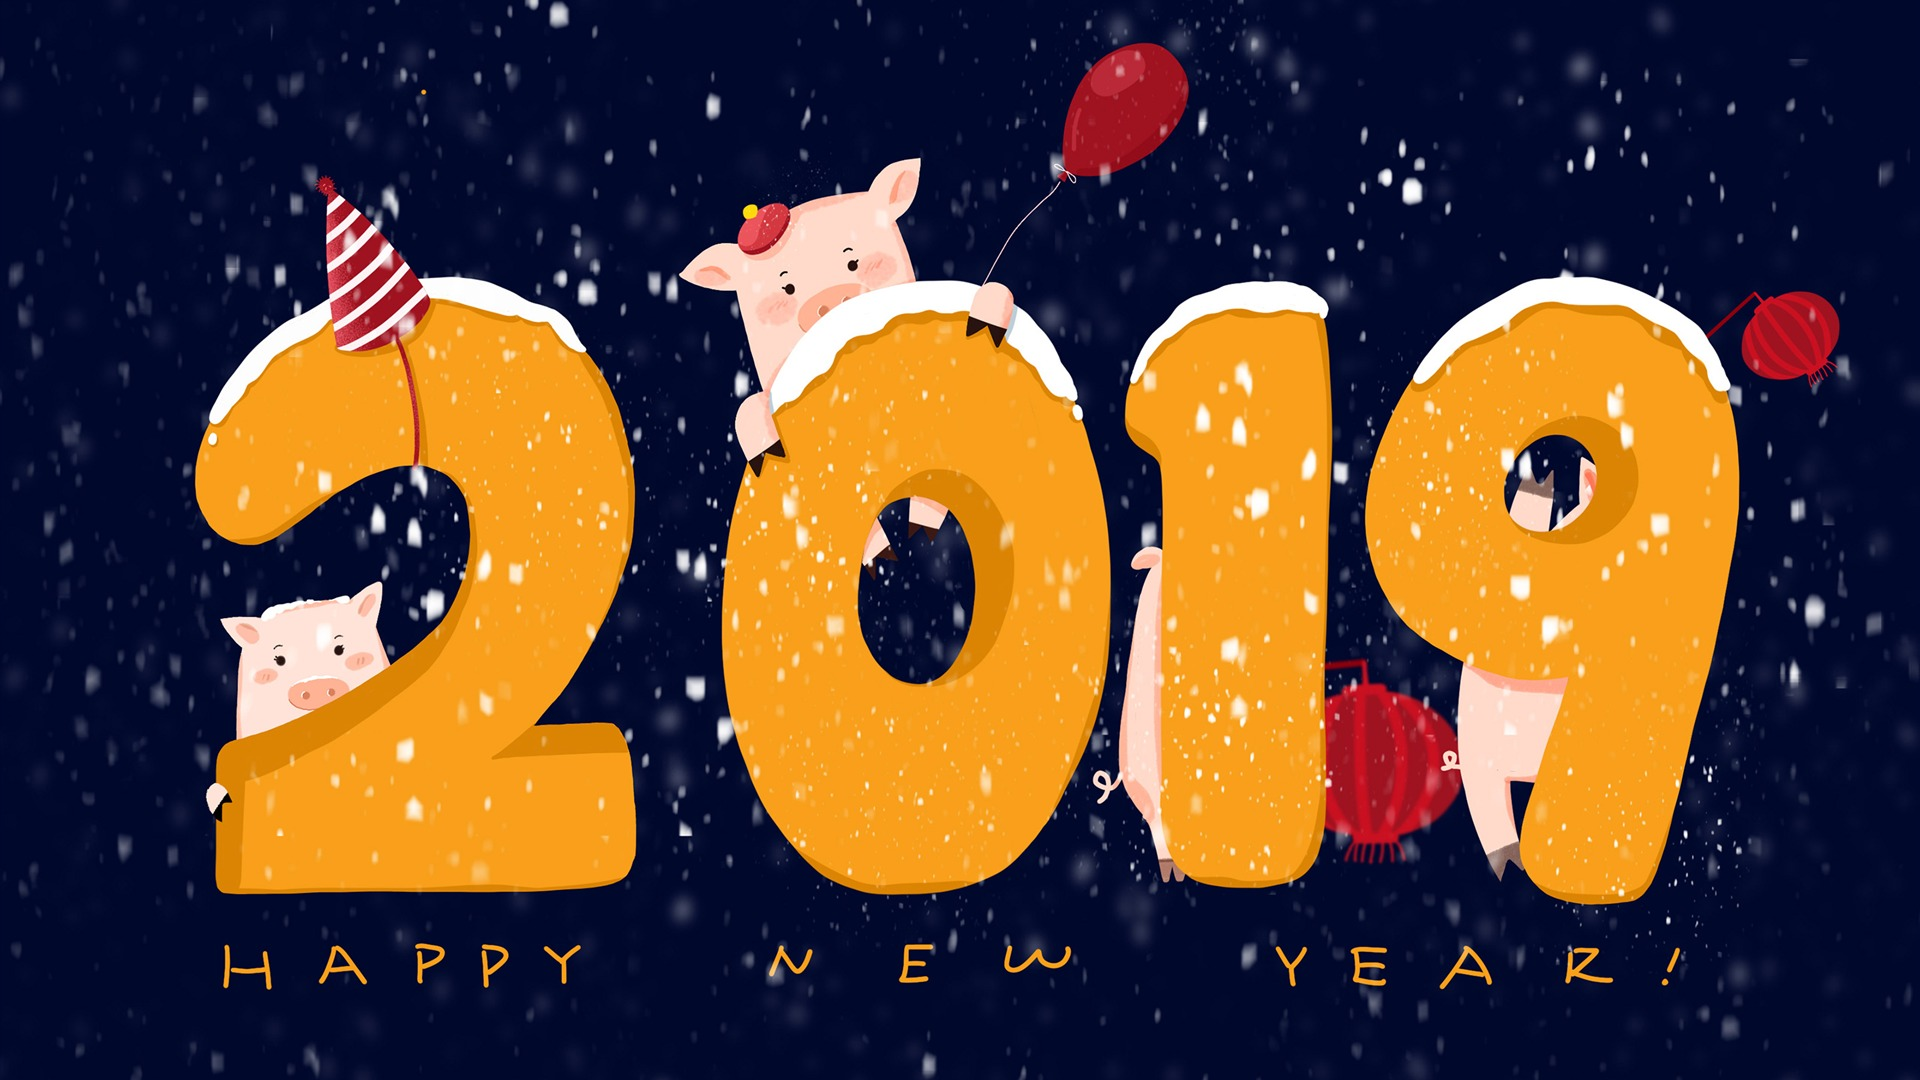 Happy New Year 2019 Winter Cute Pigs HD Wallpaper 1920x1080